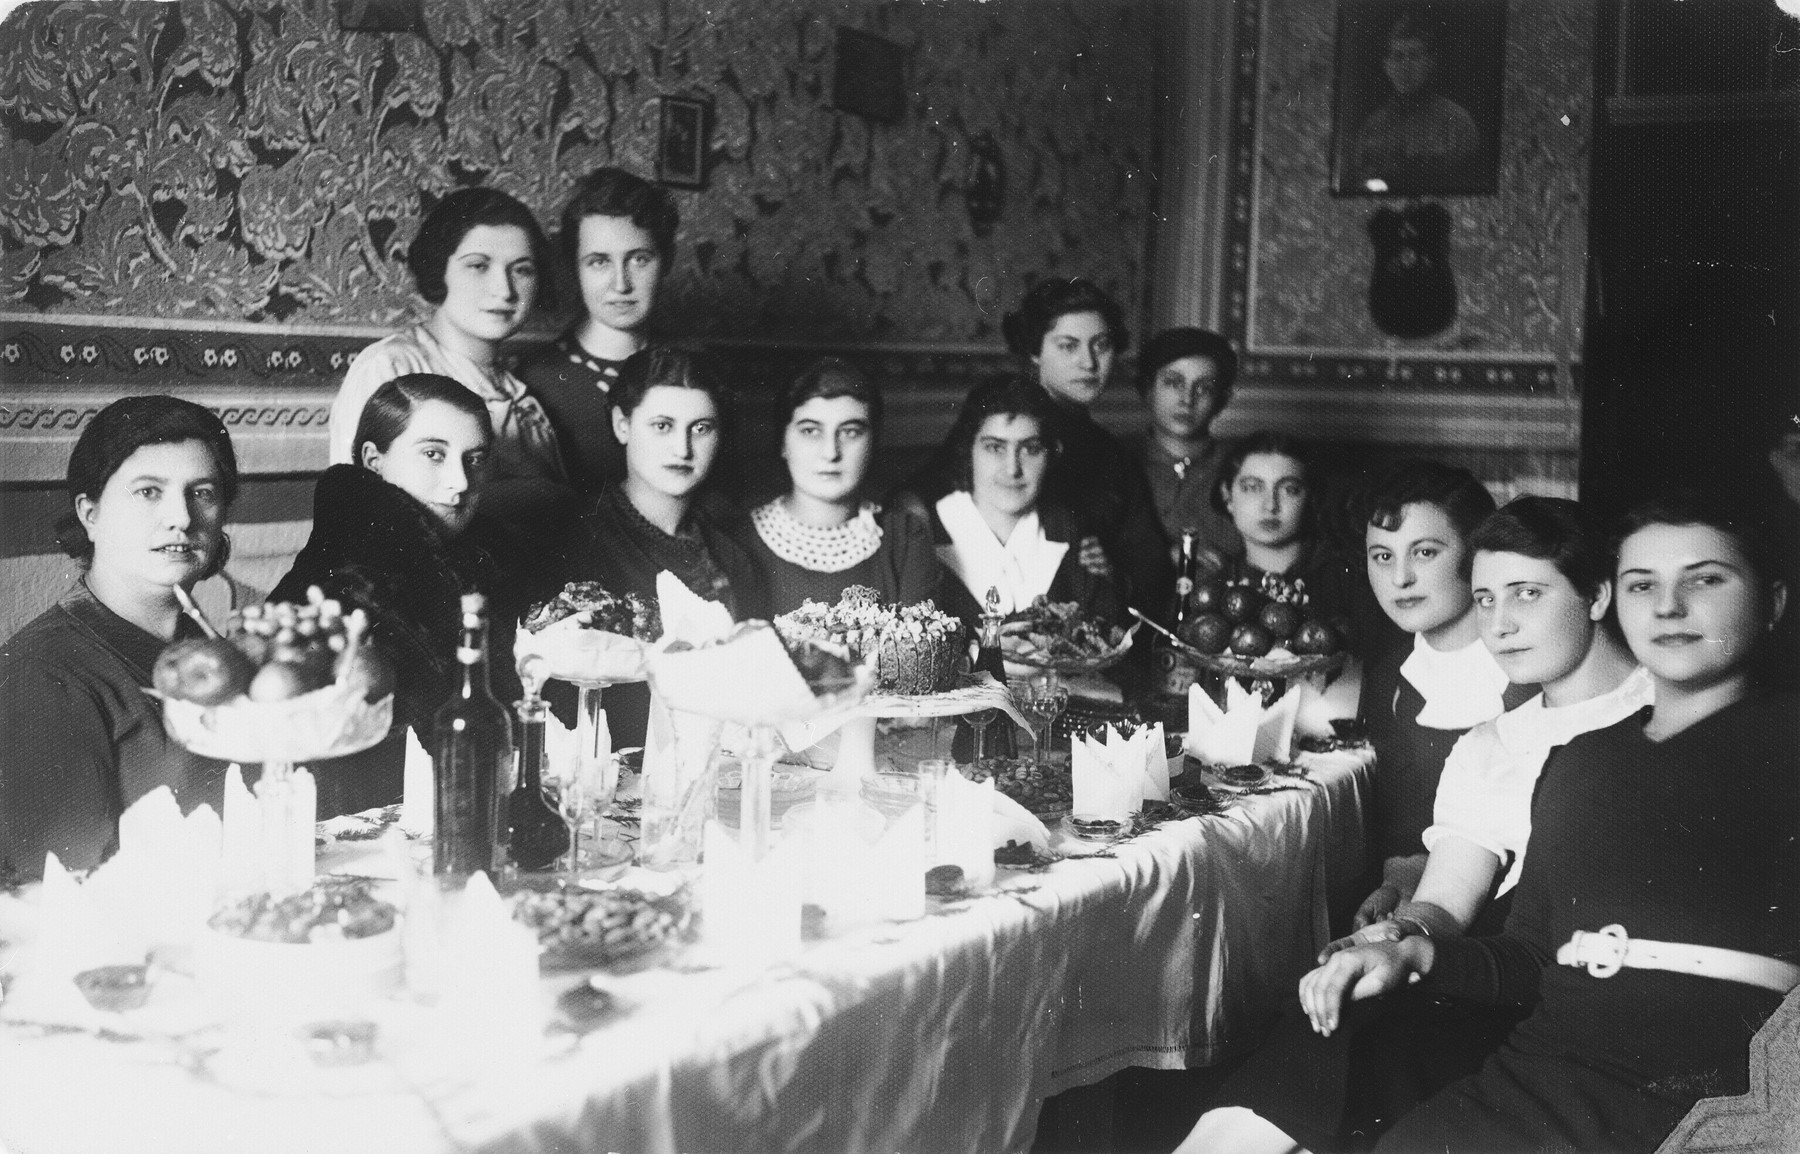 Kleinhandler family party in Chmielnik, Poland.  Among those pictured are Haika Silberberg (standing first on the left).